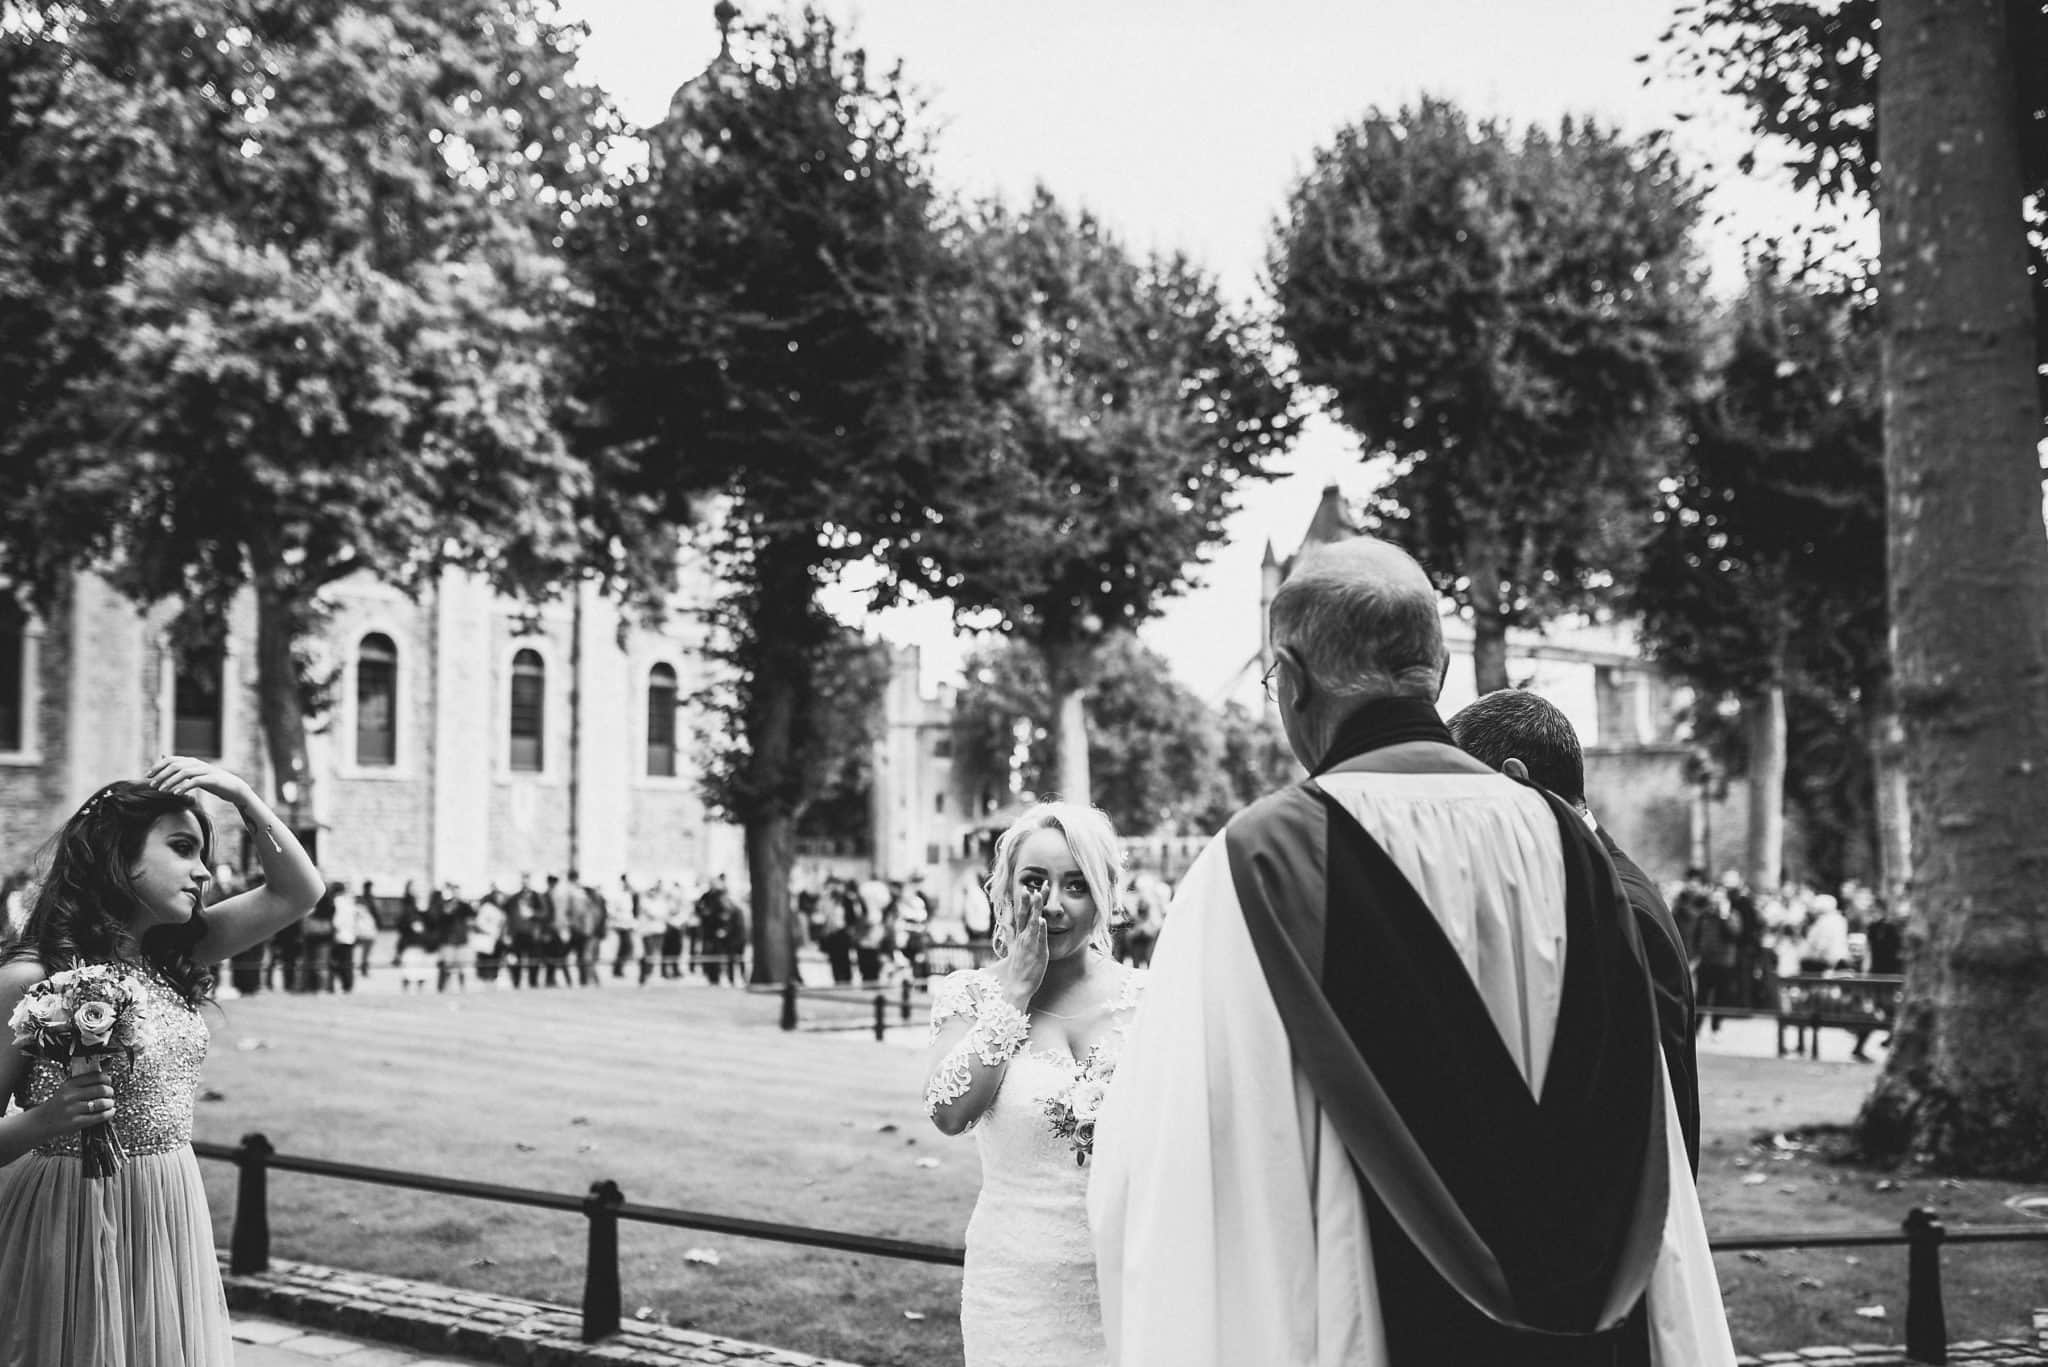 Bride gets emotional as priest greets her at the Tower of London